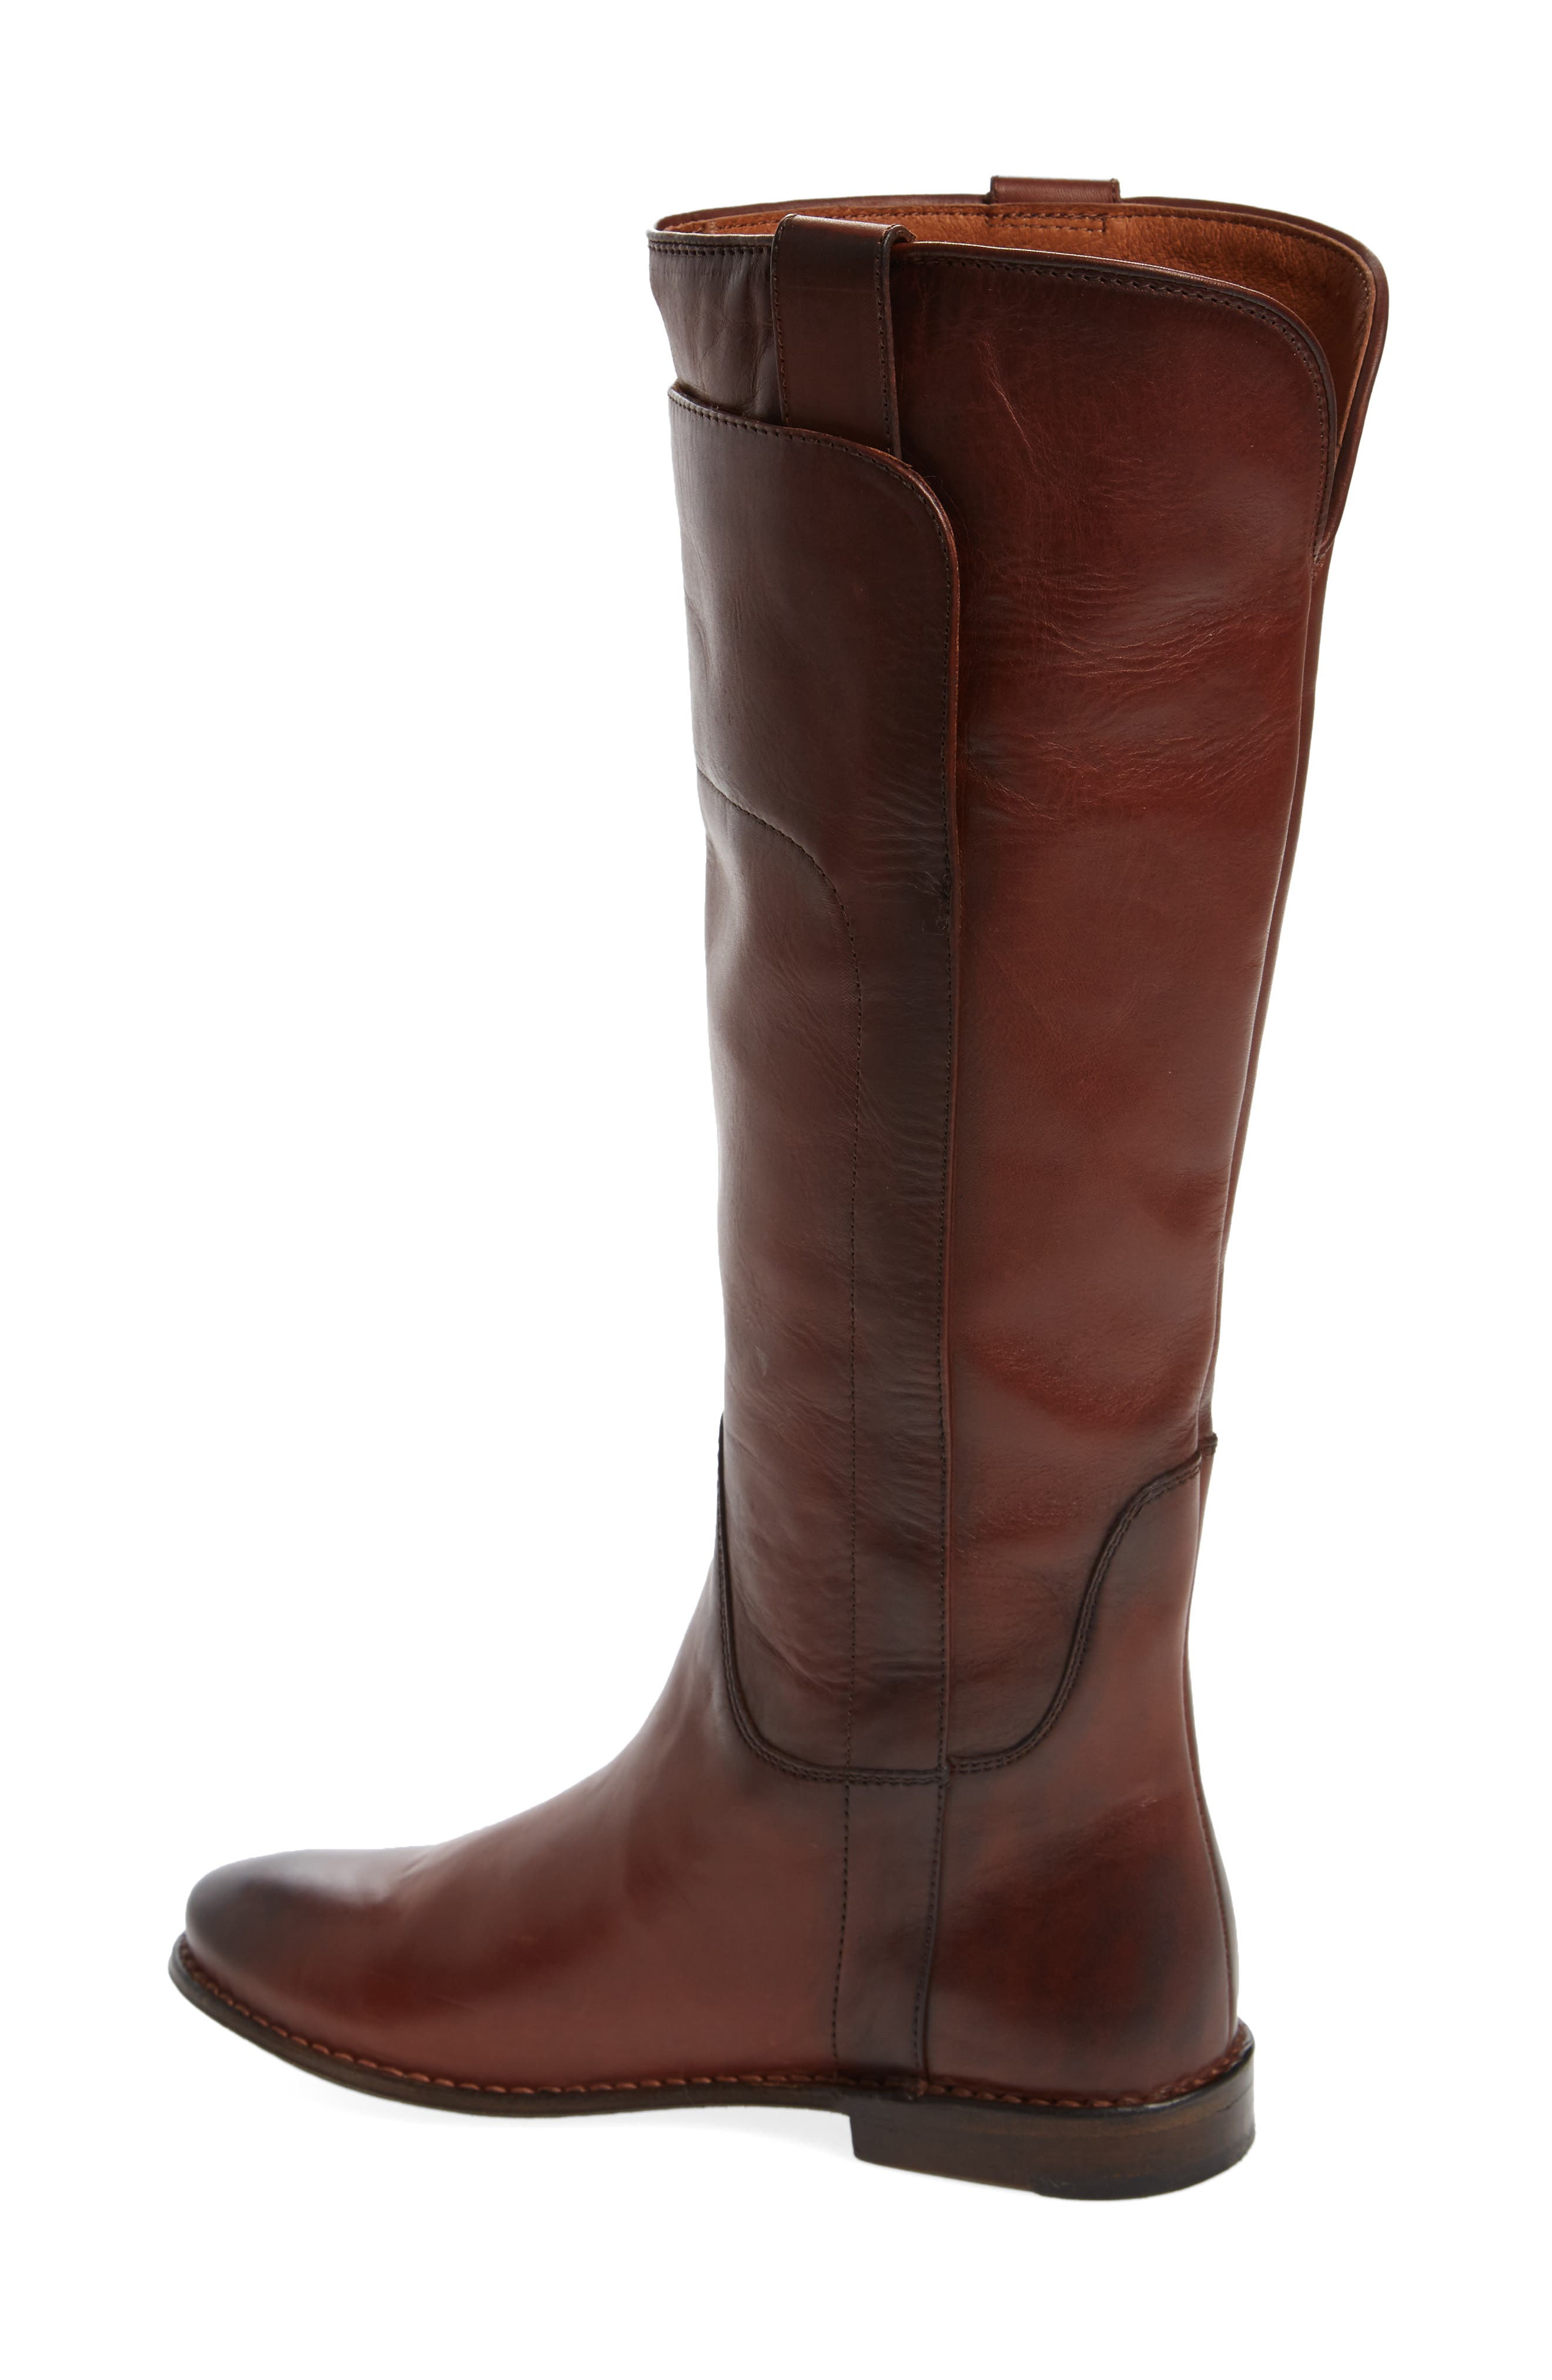 Alternate Image 2  - Frye Paige Tall Riding Boot (Women)